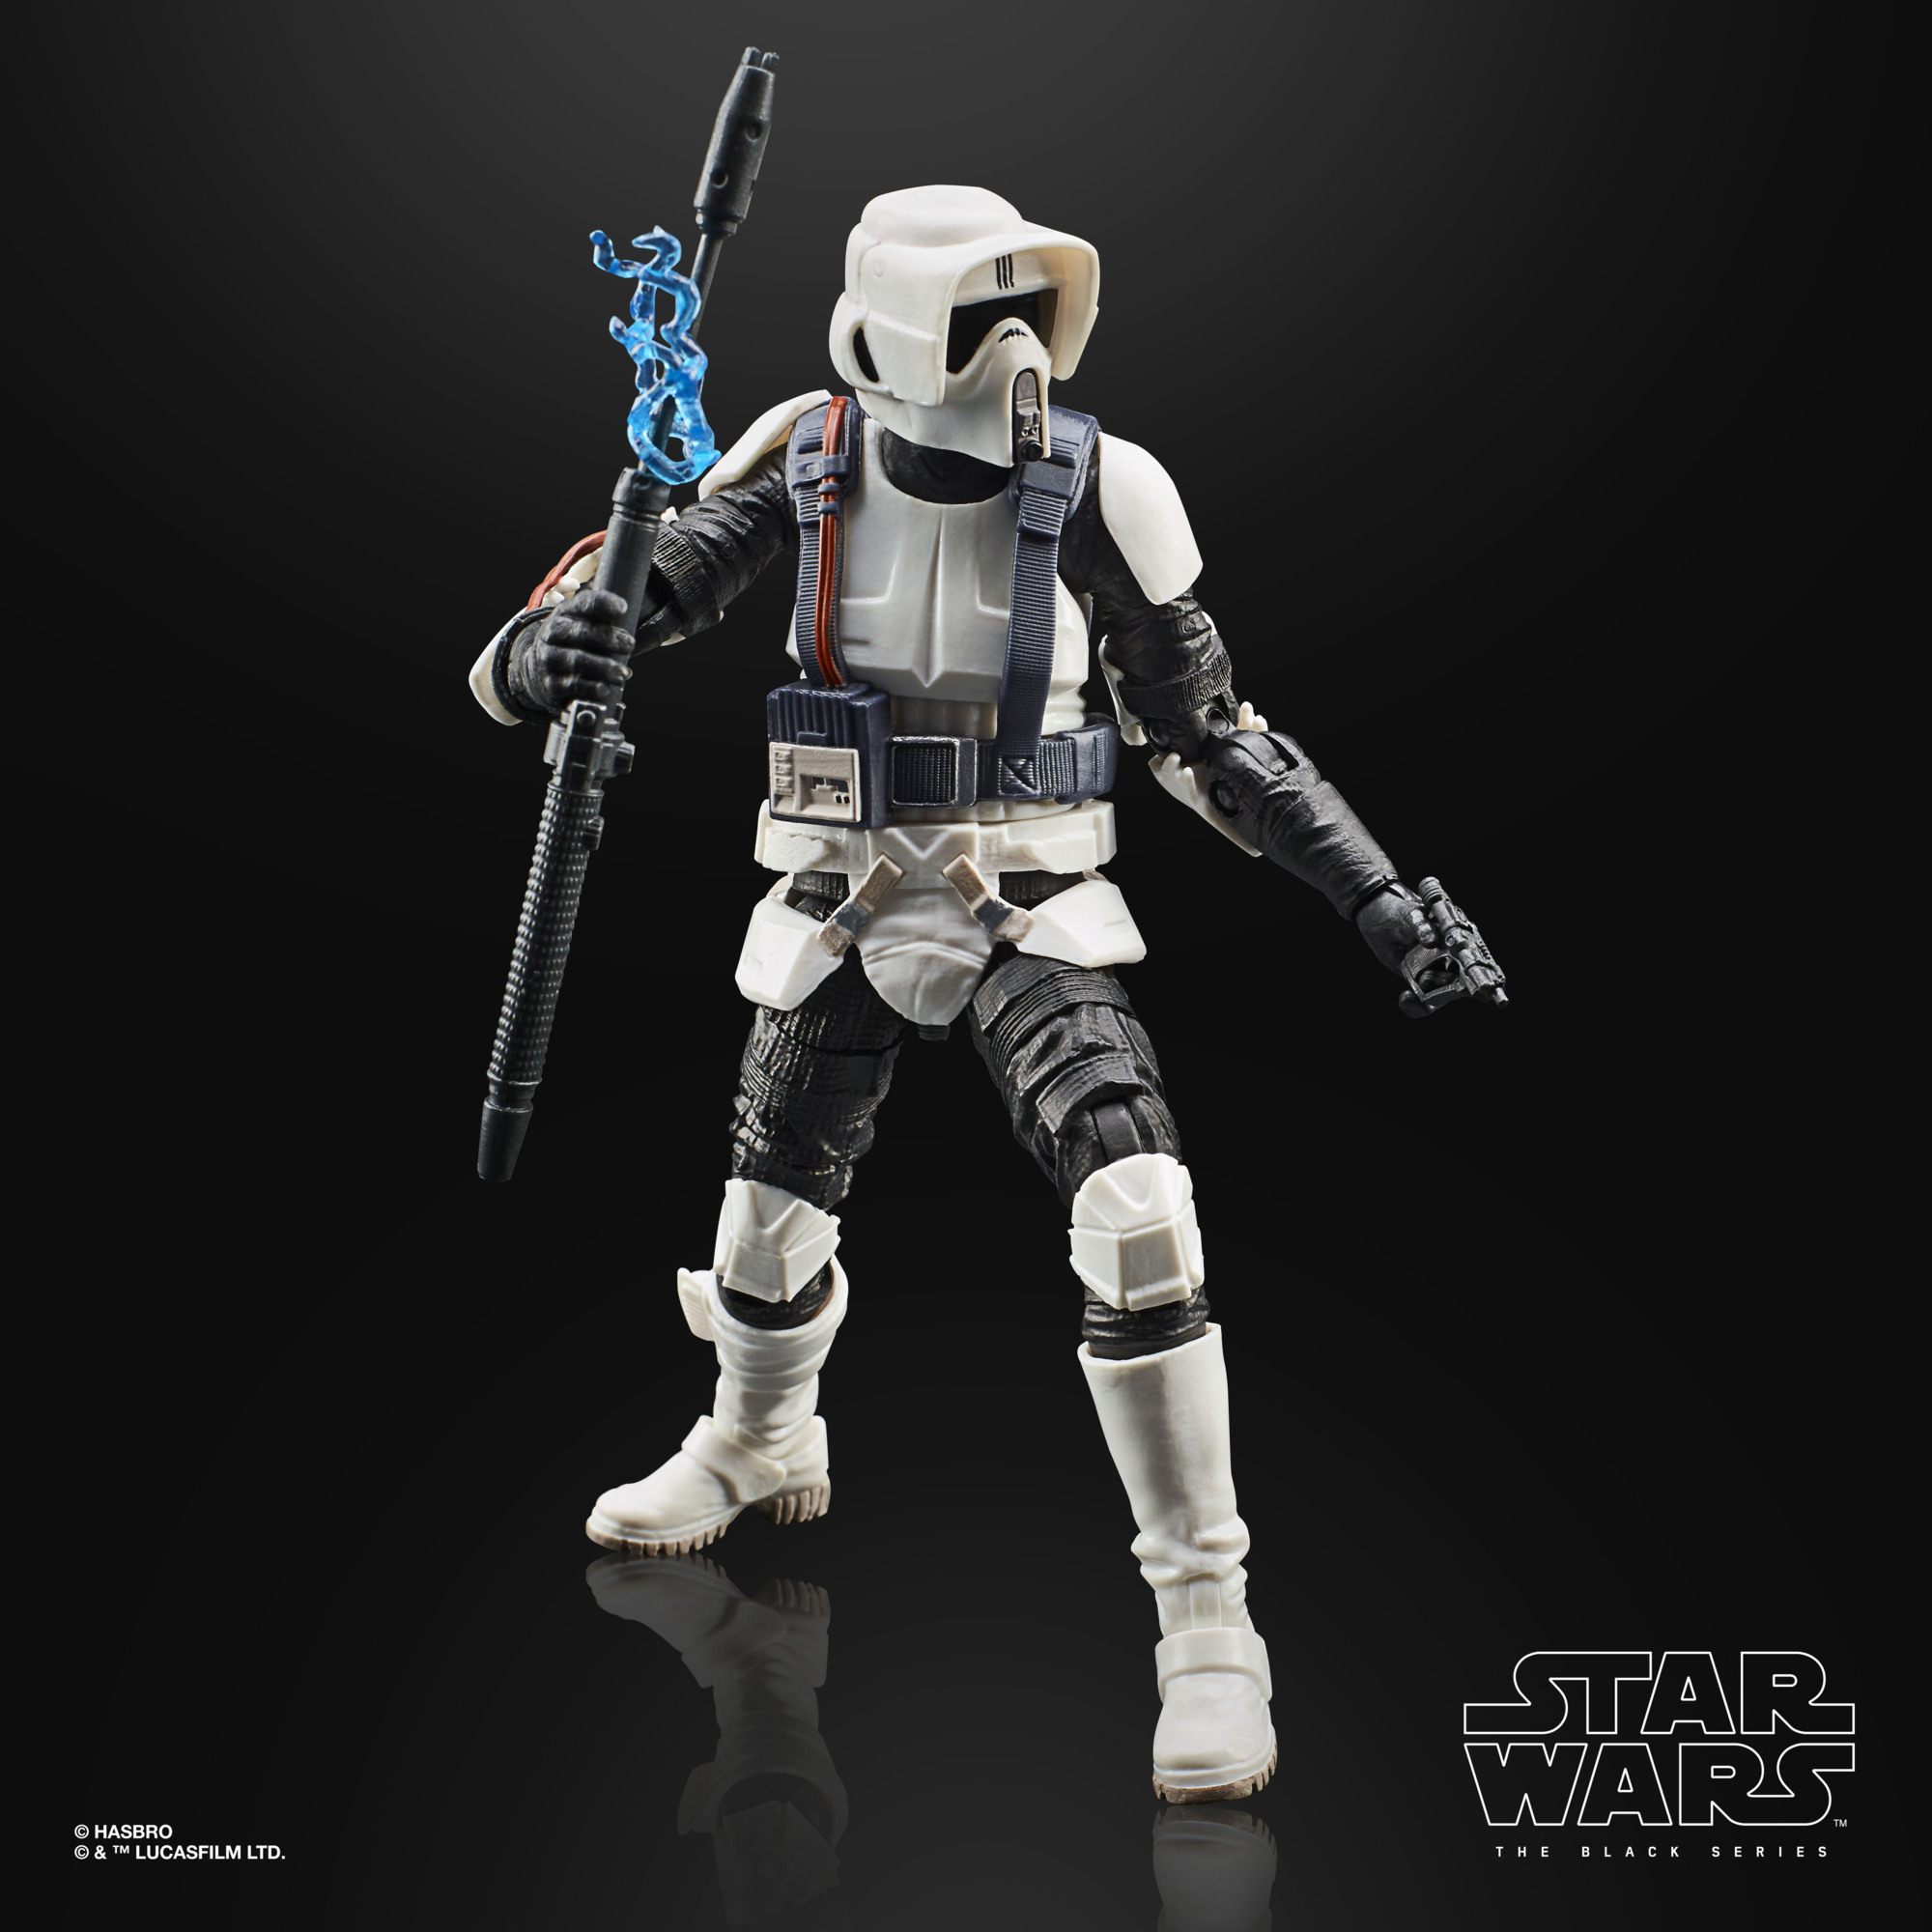 Star Wars The Black Series Gaming Greats Scout Trooper E9994 5010993750191